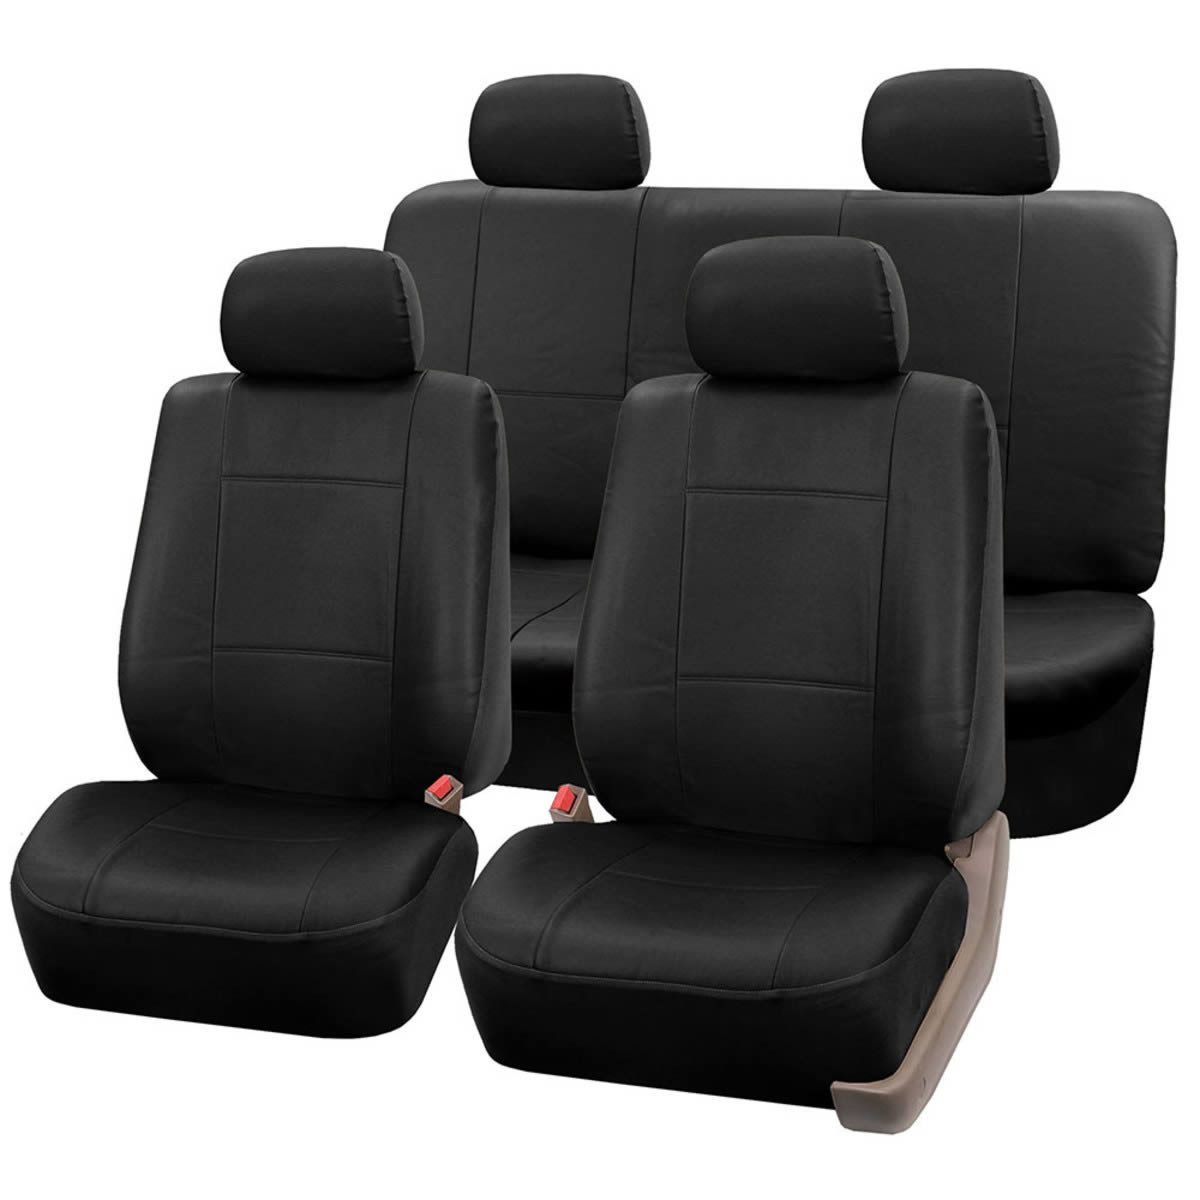 Sensational Premium Pu Leather Seat Covers Full Set Pdpeps Interior Chair Design Pdpepsorg